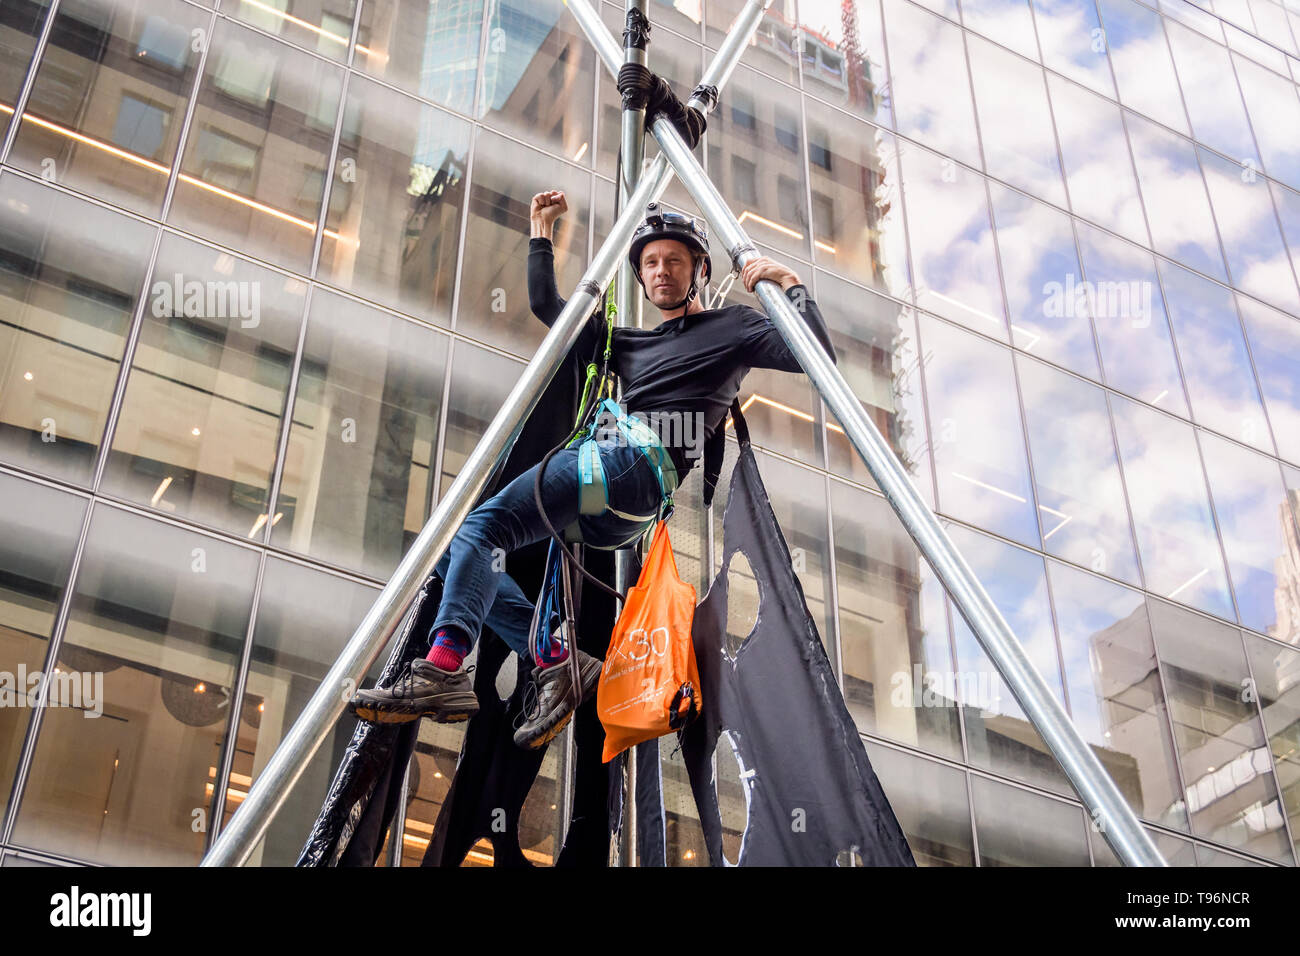 New York, United States. 16th May, 2019. Protests against Chase Bank for its role as the world's worst funder of climate change escalated as climate activists erected and scaled a two-story, steel tripod structure, blocking 47th St at Madison Ave, in front of Chase's new flagship global corporate headquarters. One arrest was while a group of supporting demonstrators chanted and displayed banners calling on Chase to end its massive funding of fossil fuels. Credit: Erik McGregor/Pacific Press/Alamy Live News - Stock Image